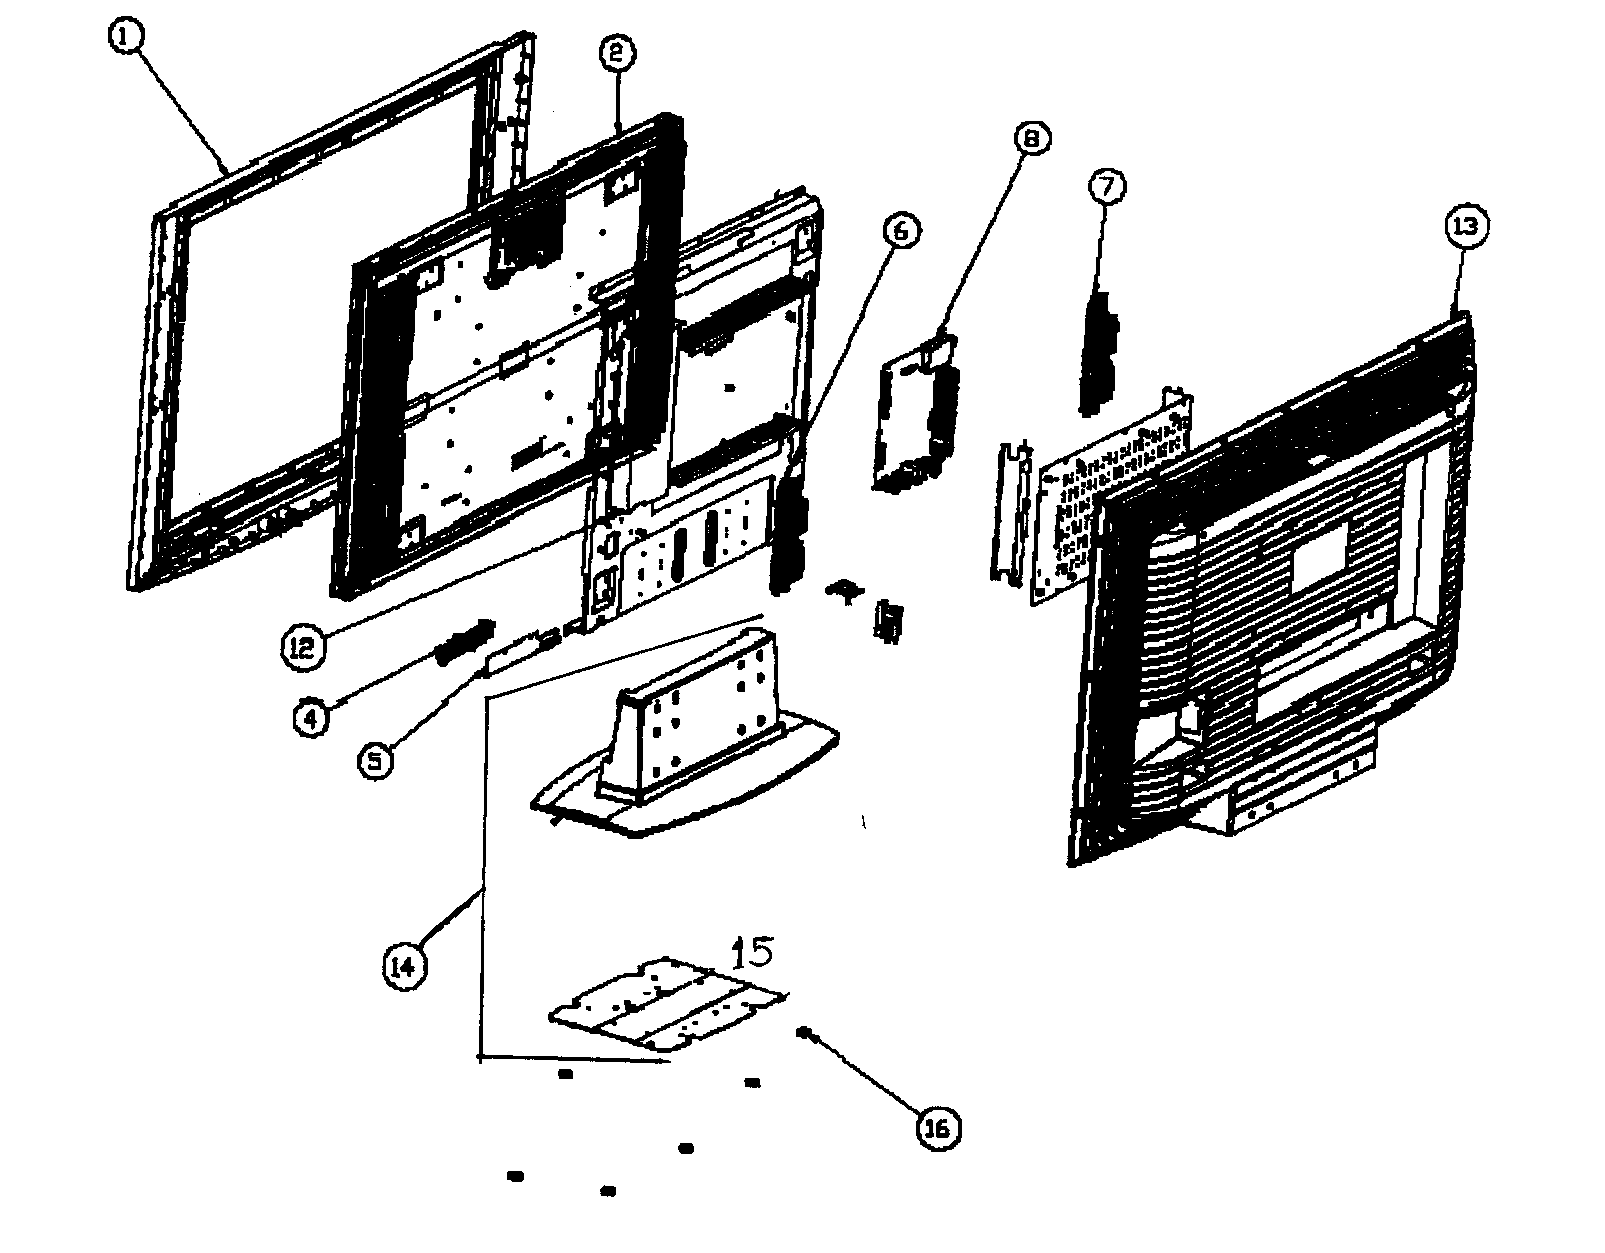 Olevia model 242-S11 lcd television genuine parts